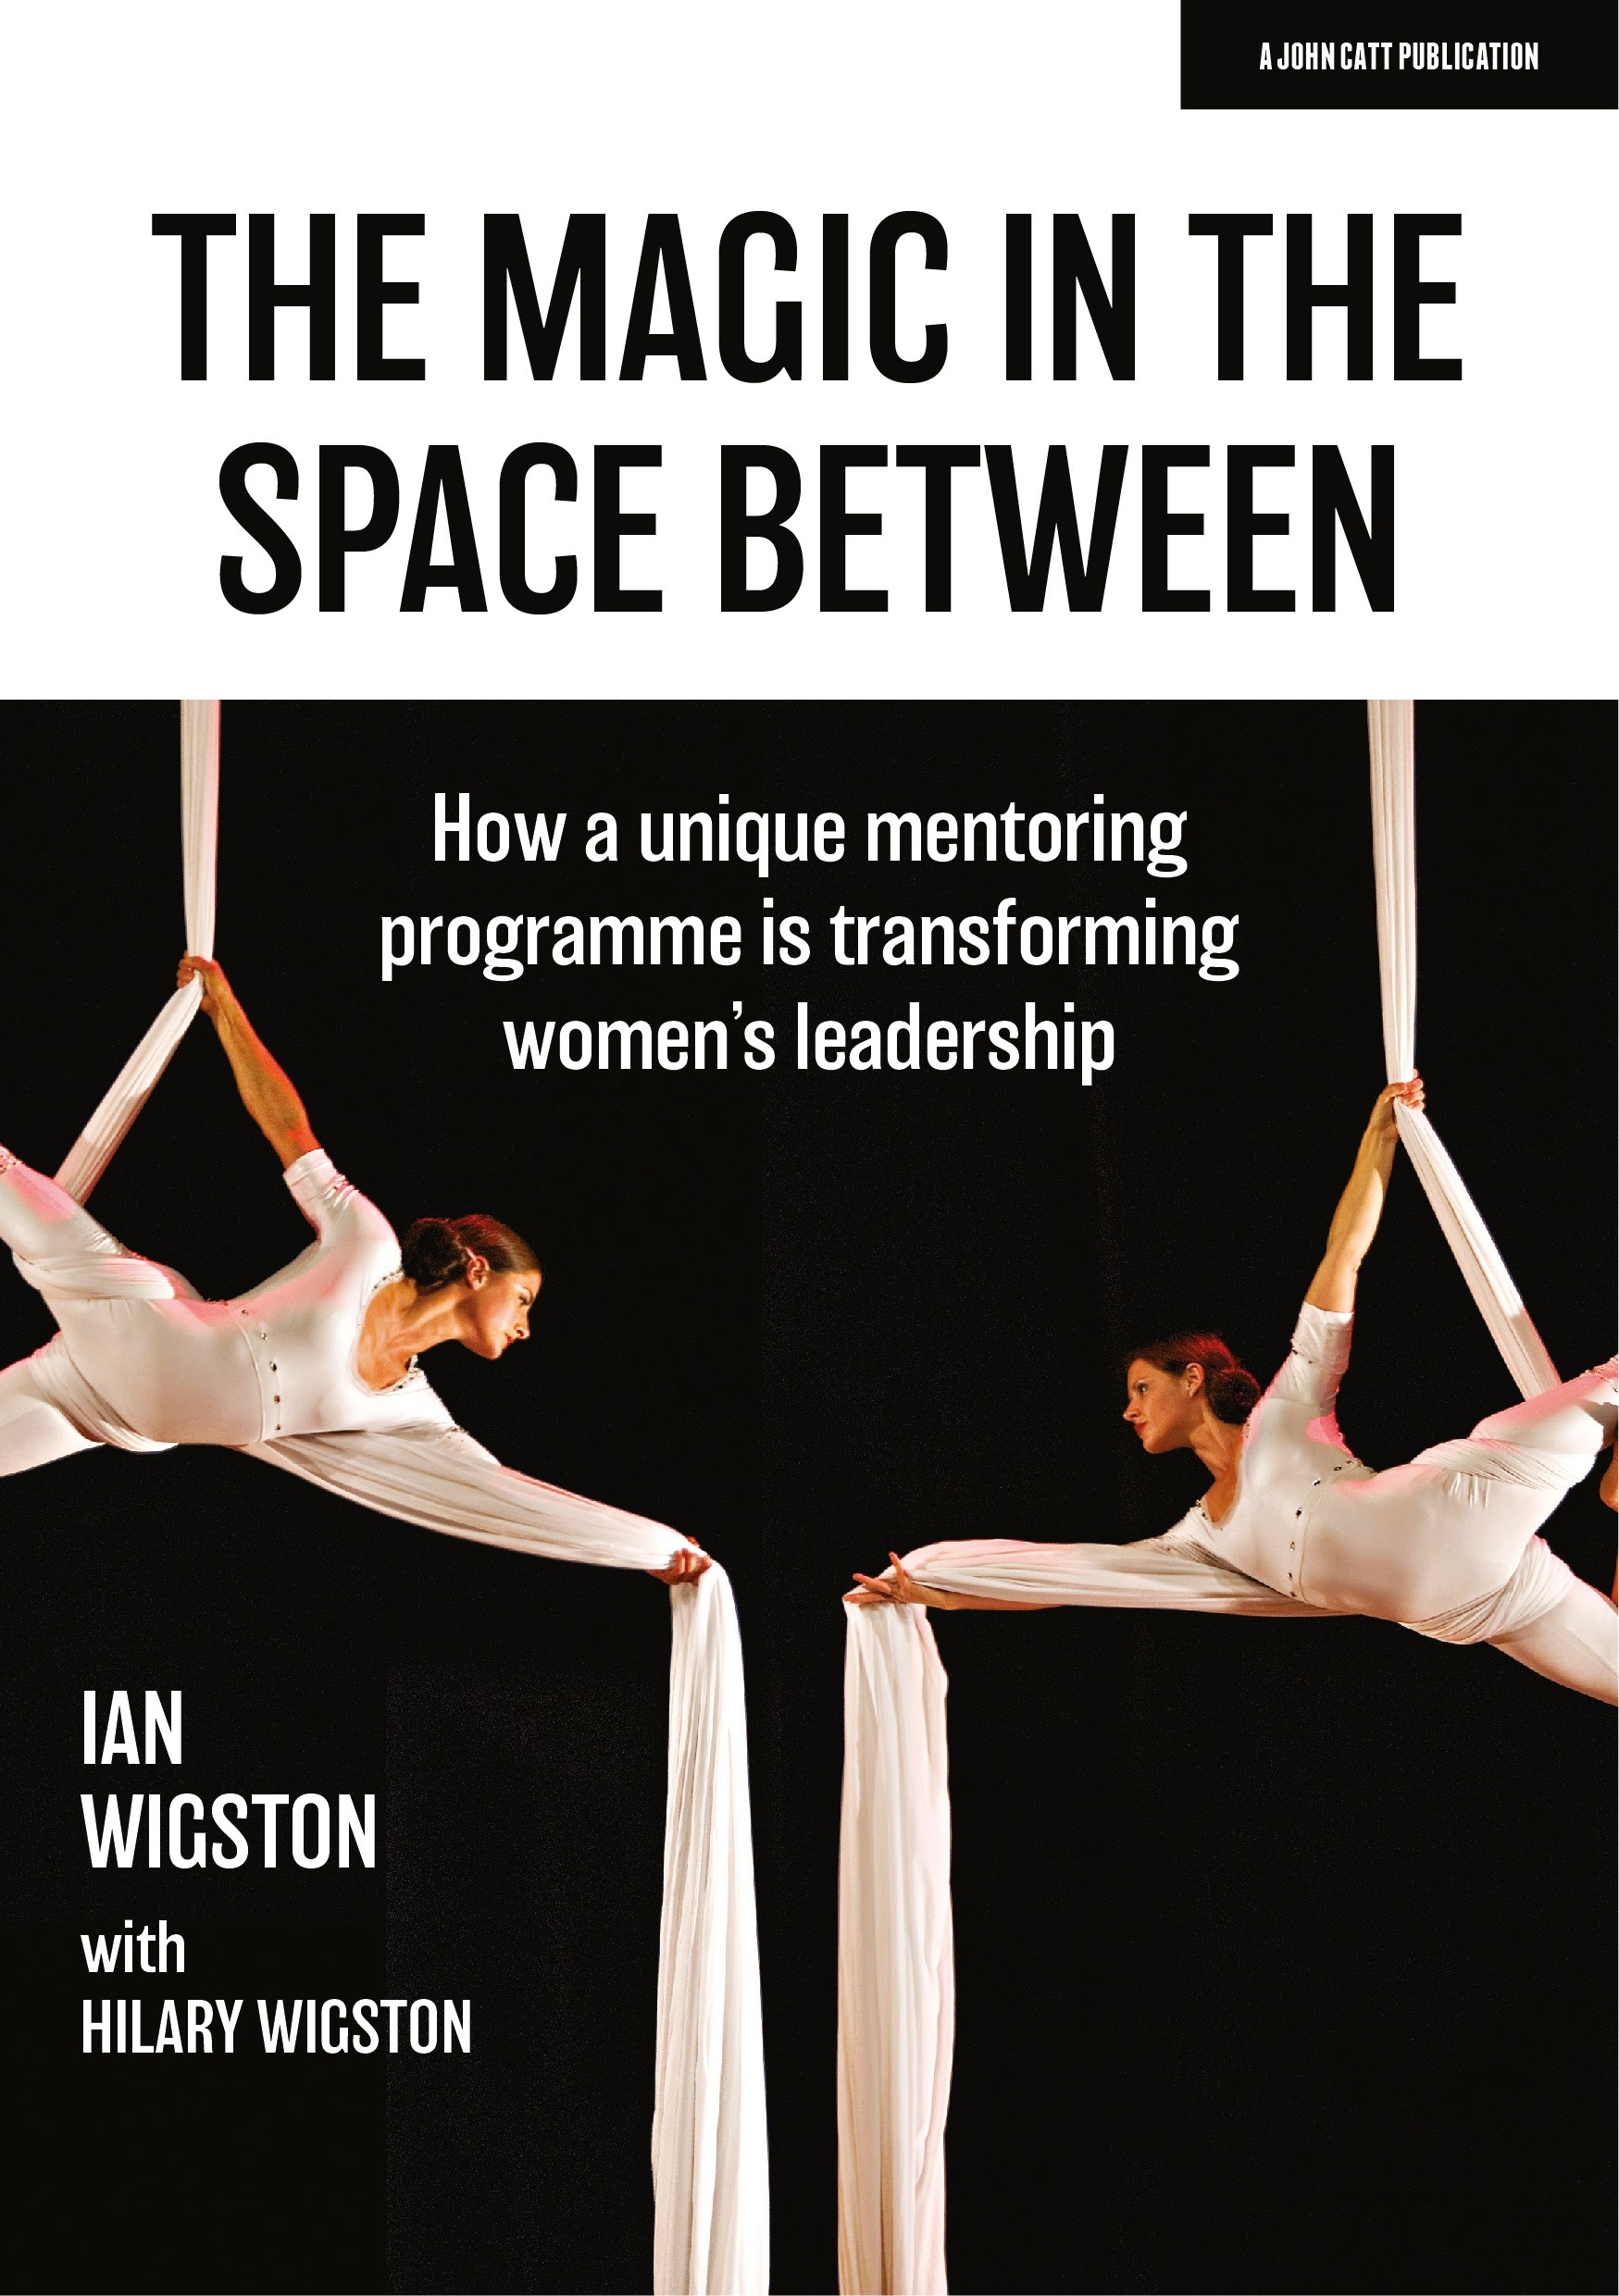 The Magic in the Space Between: How a unique mentoring programme is transforming women's leadership